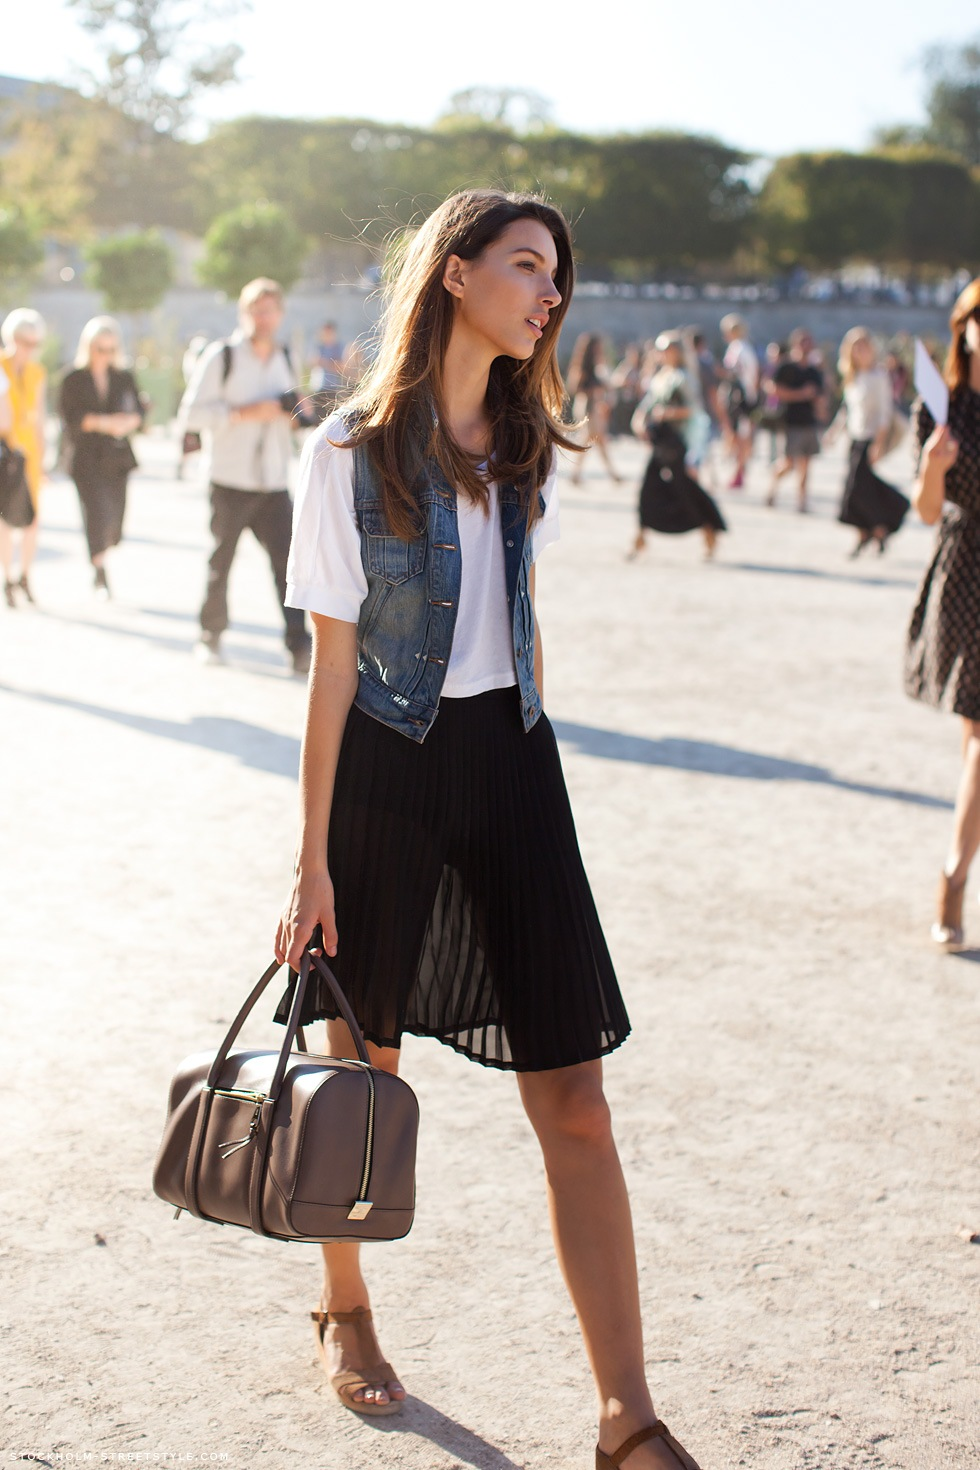 VESTS: The Key To Summer Layering – The Fashion Tag Blog